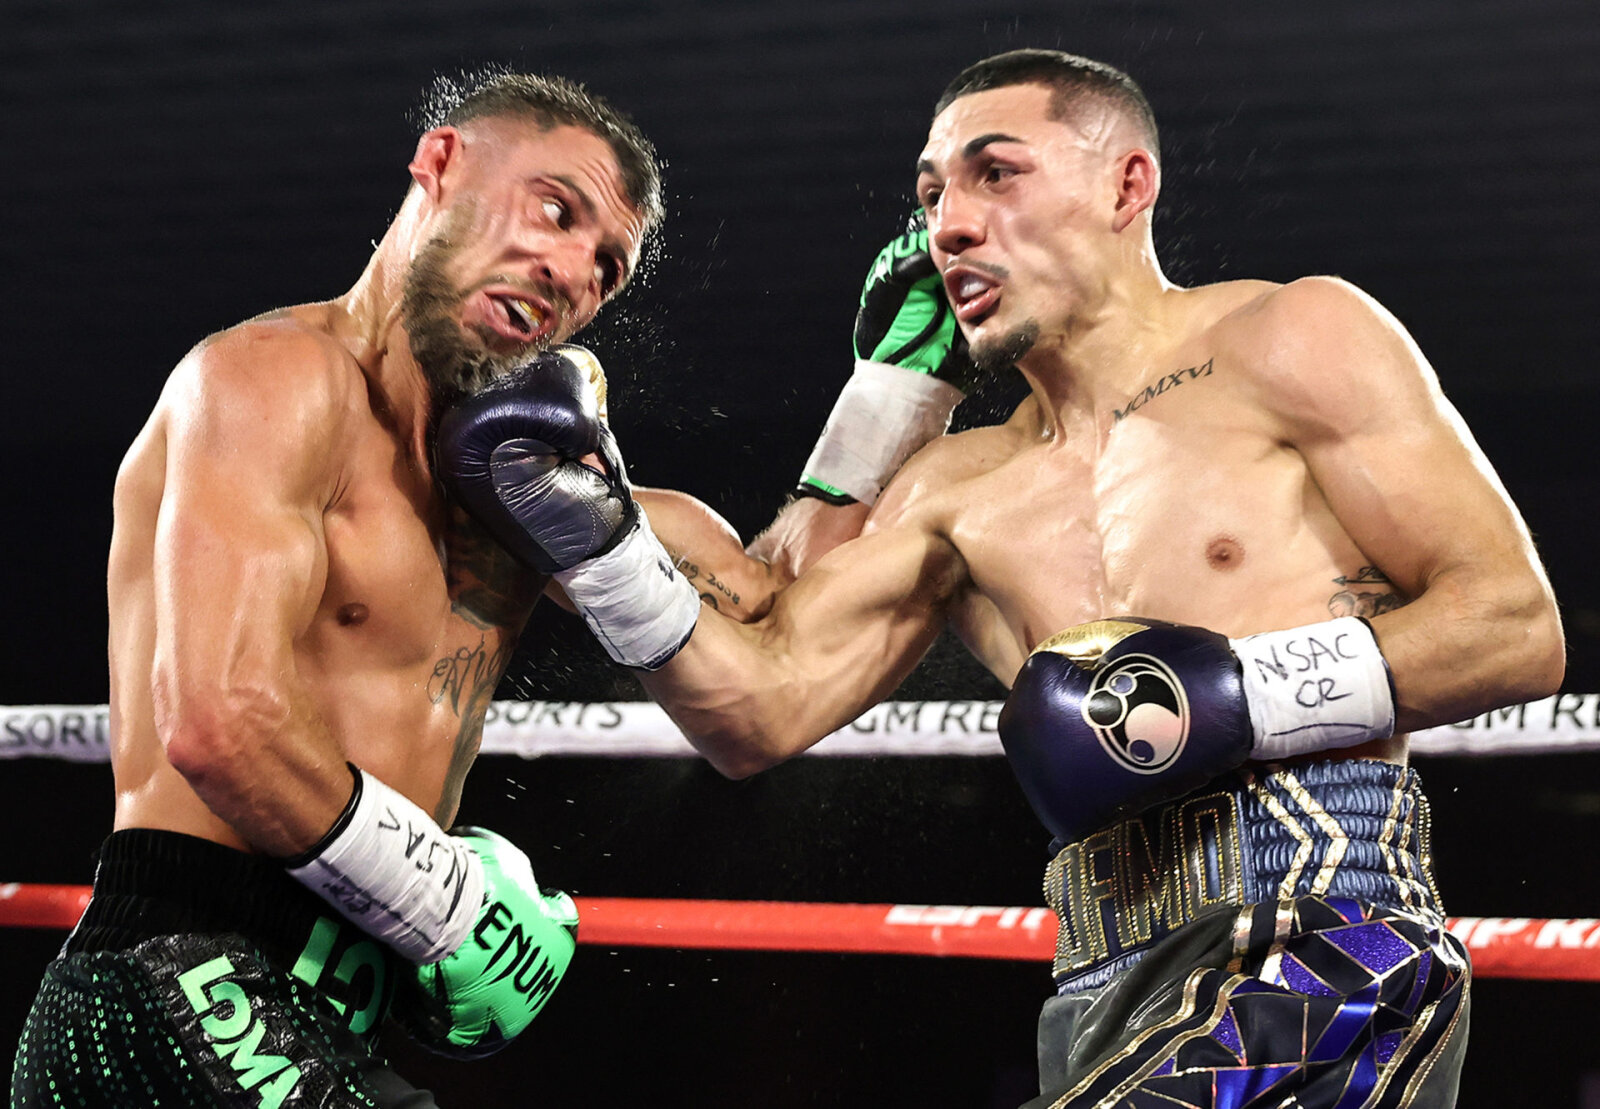 'In Championship Rounds, It's 2–1' – Vasyl Lomachenko Breaks Down His Fight Against Teofimo Lopez